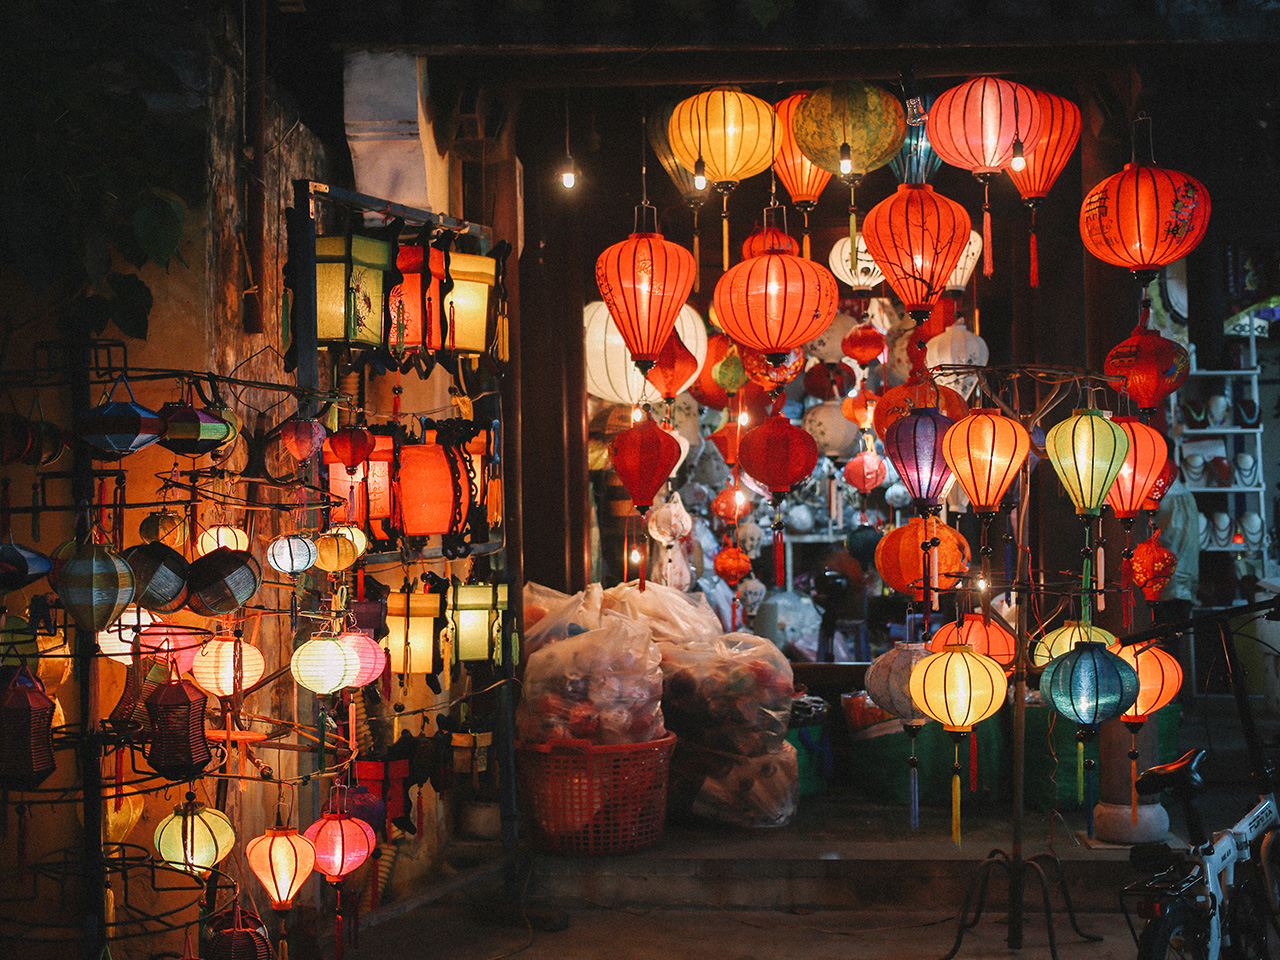 48 hours in Hoi An, Vietnam